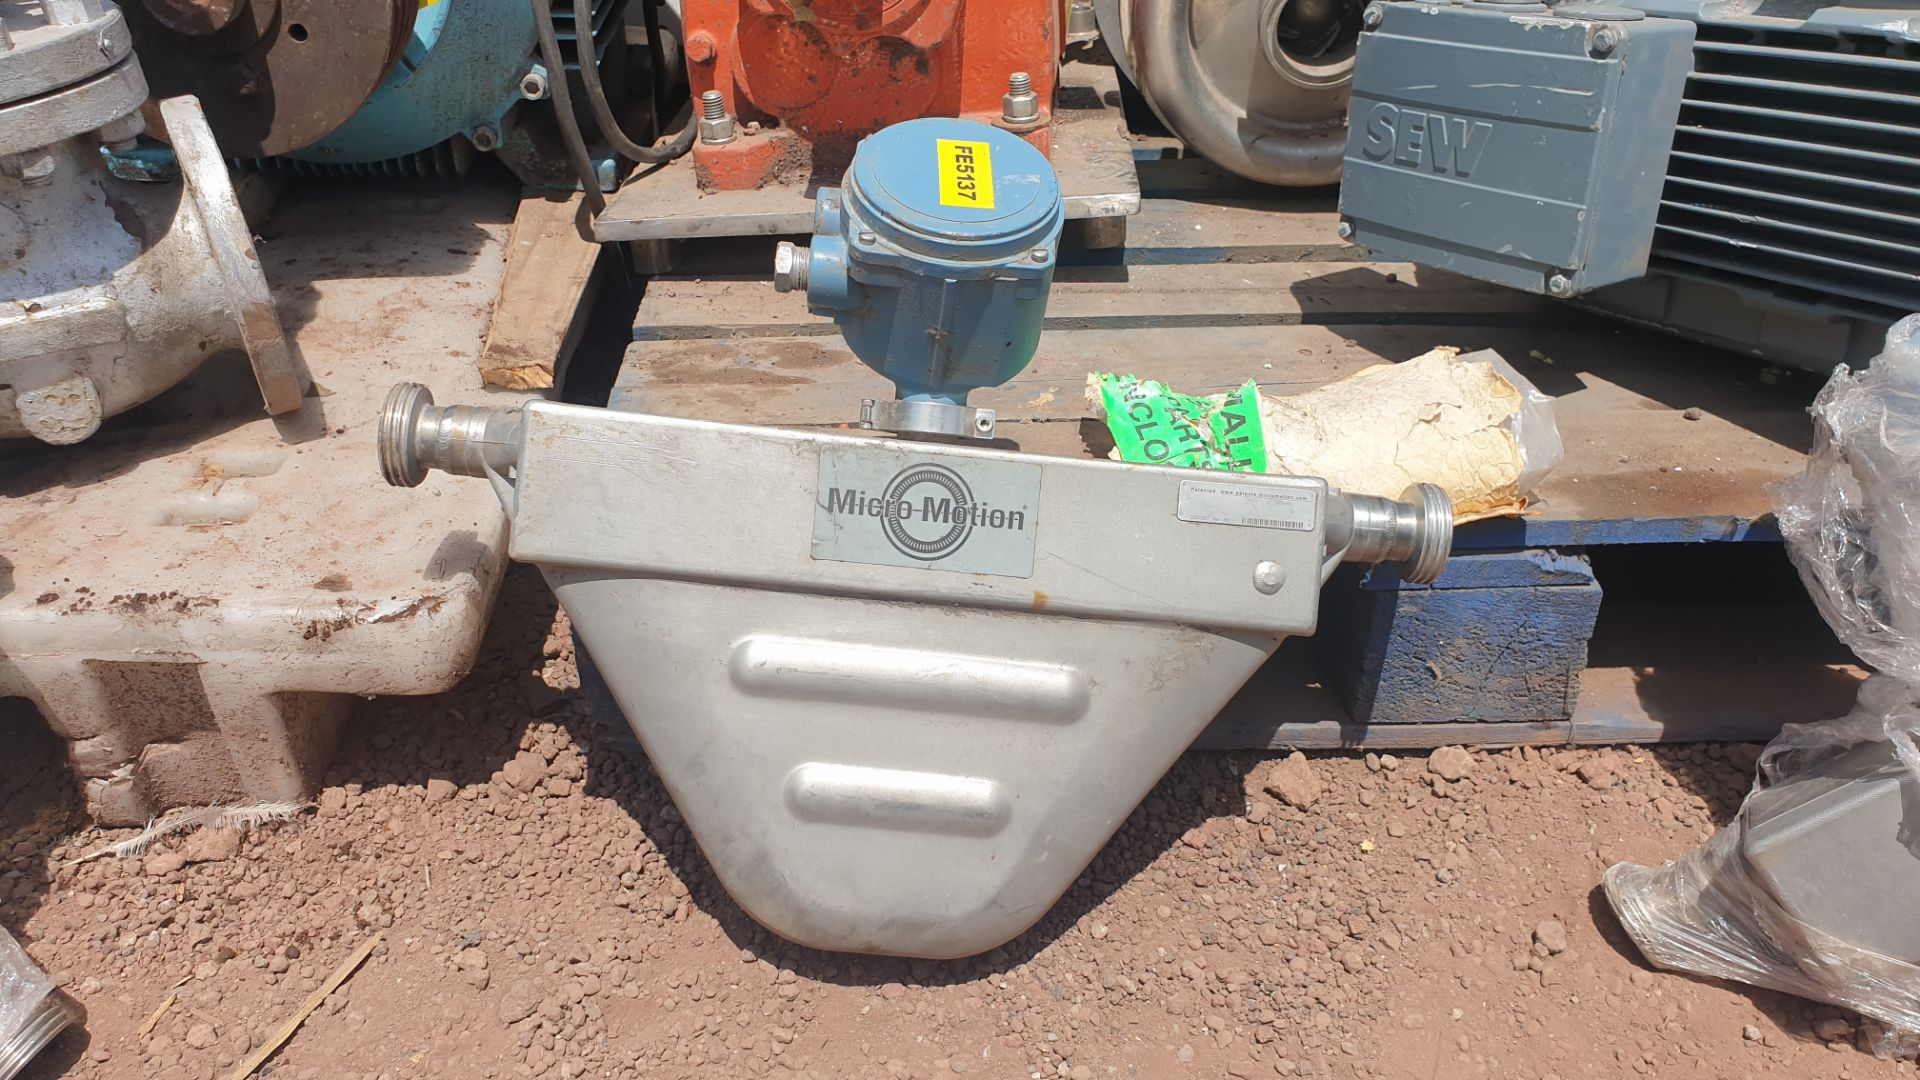 Micromotion Flow meter, model F100S230C2BMSZZZZ NS 14638390 2016 - Image 4 of 9